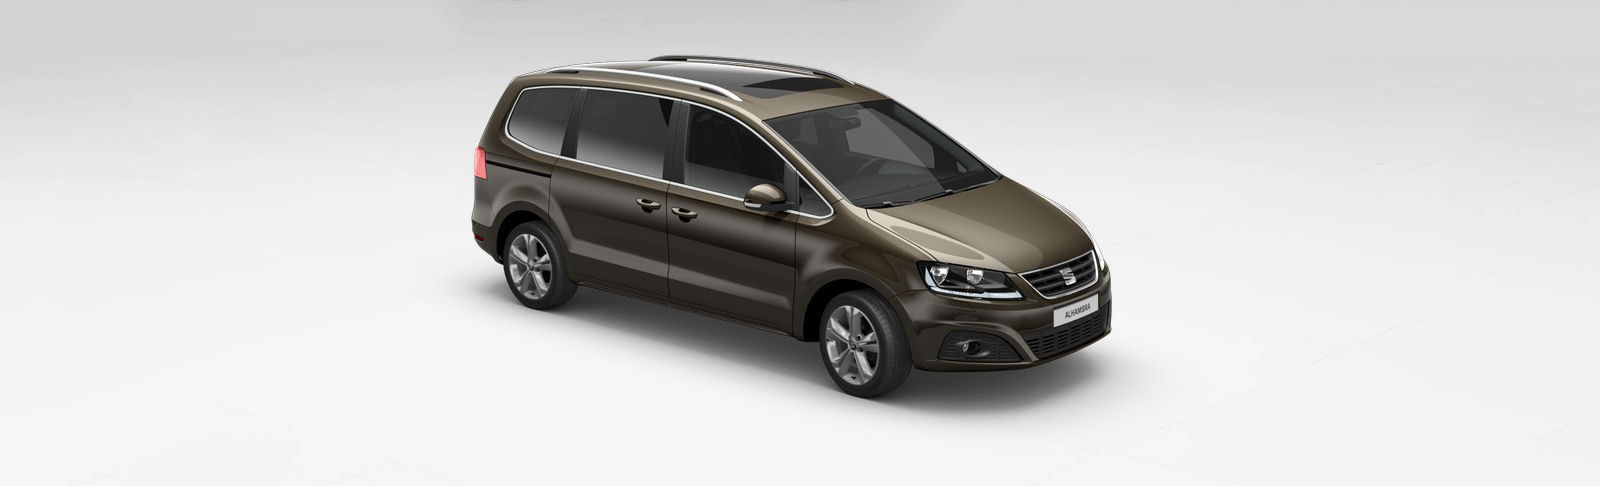 Seat Alhambra Colours Guide And Prices Carwow